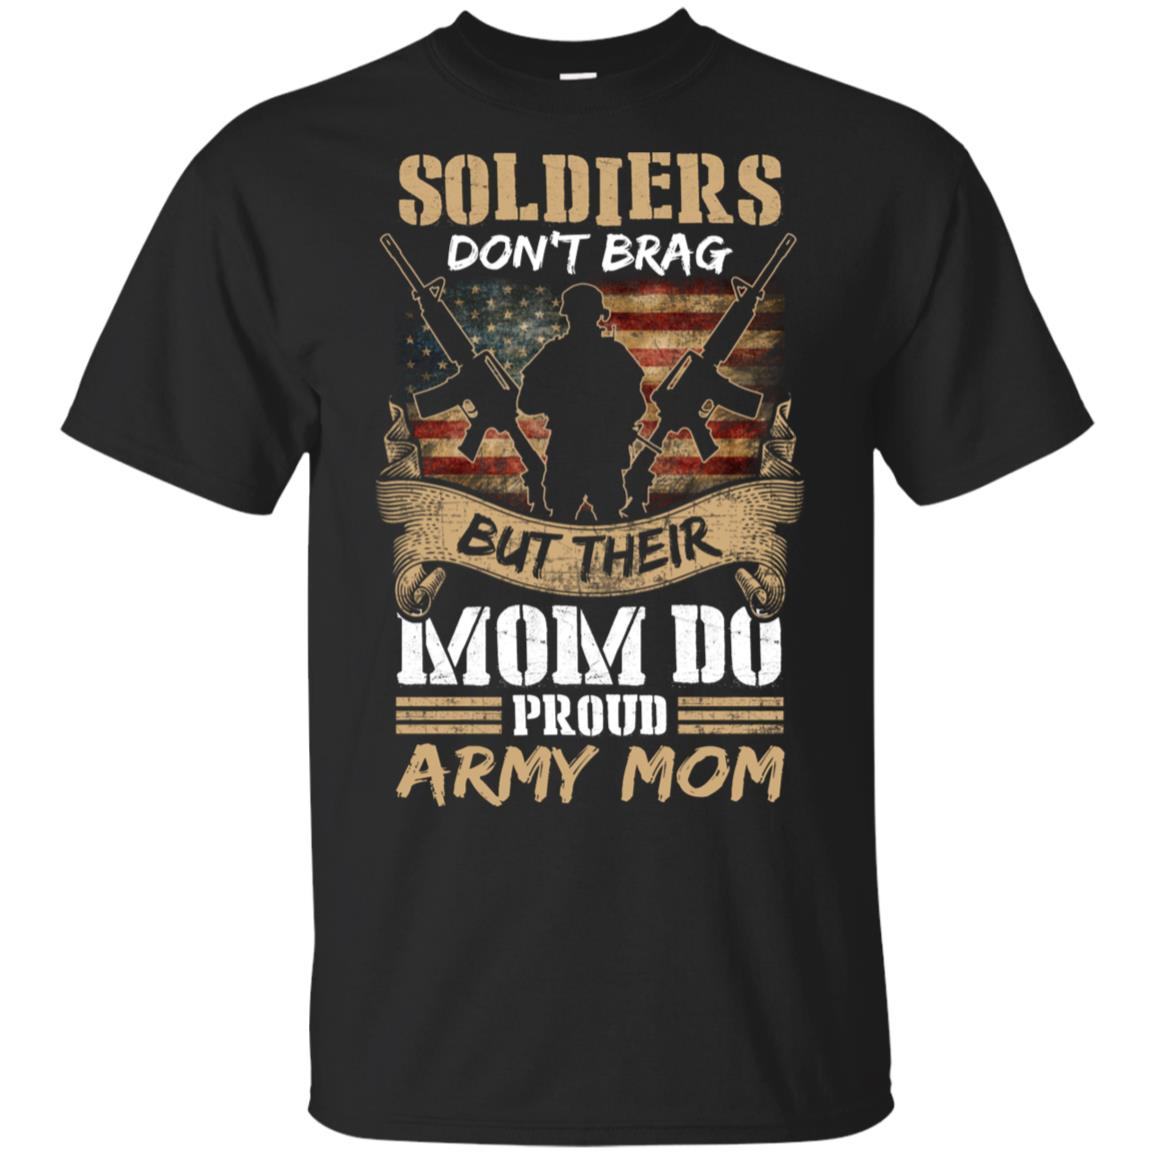 Soldiers Don't Brag But Their Moms Do Tees Army Mom Tees Unisex Short Sleeve